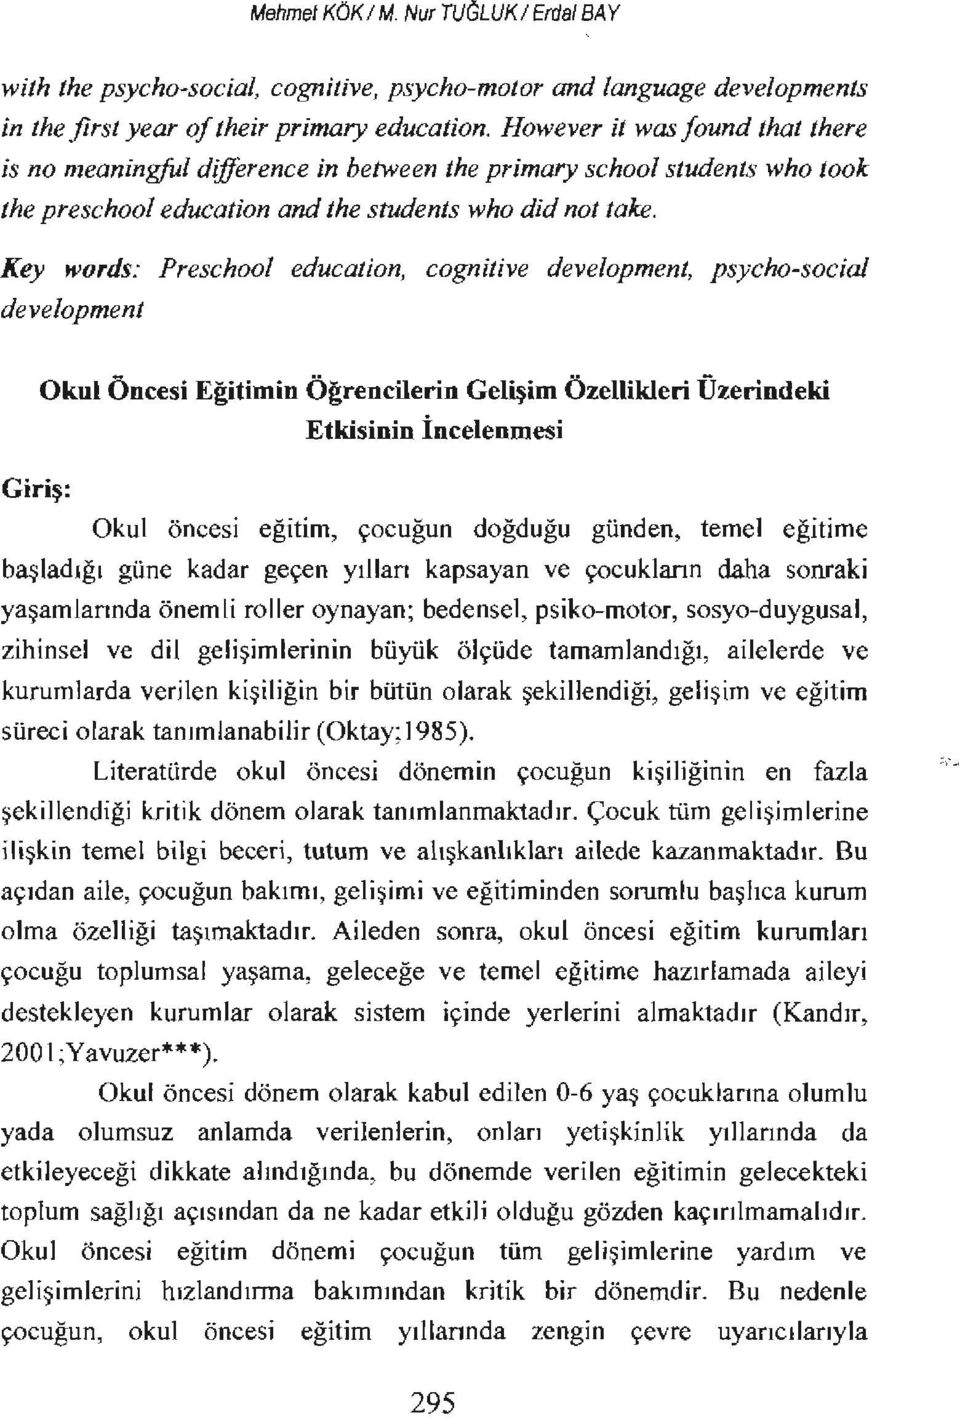 Key Hlords: Preschool education, cognitive development, psycho-sociaı development Okul Öncesi Eğitimin Öğrencilerin Gelişim Özellikleri Üzerindeki Etkisinin İncelenmesi Giriş: Okul öncesi eğitim,